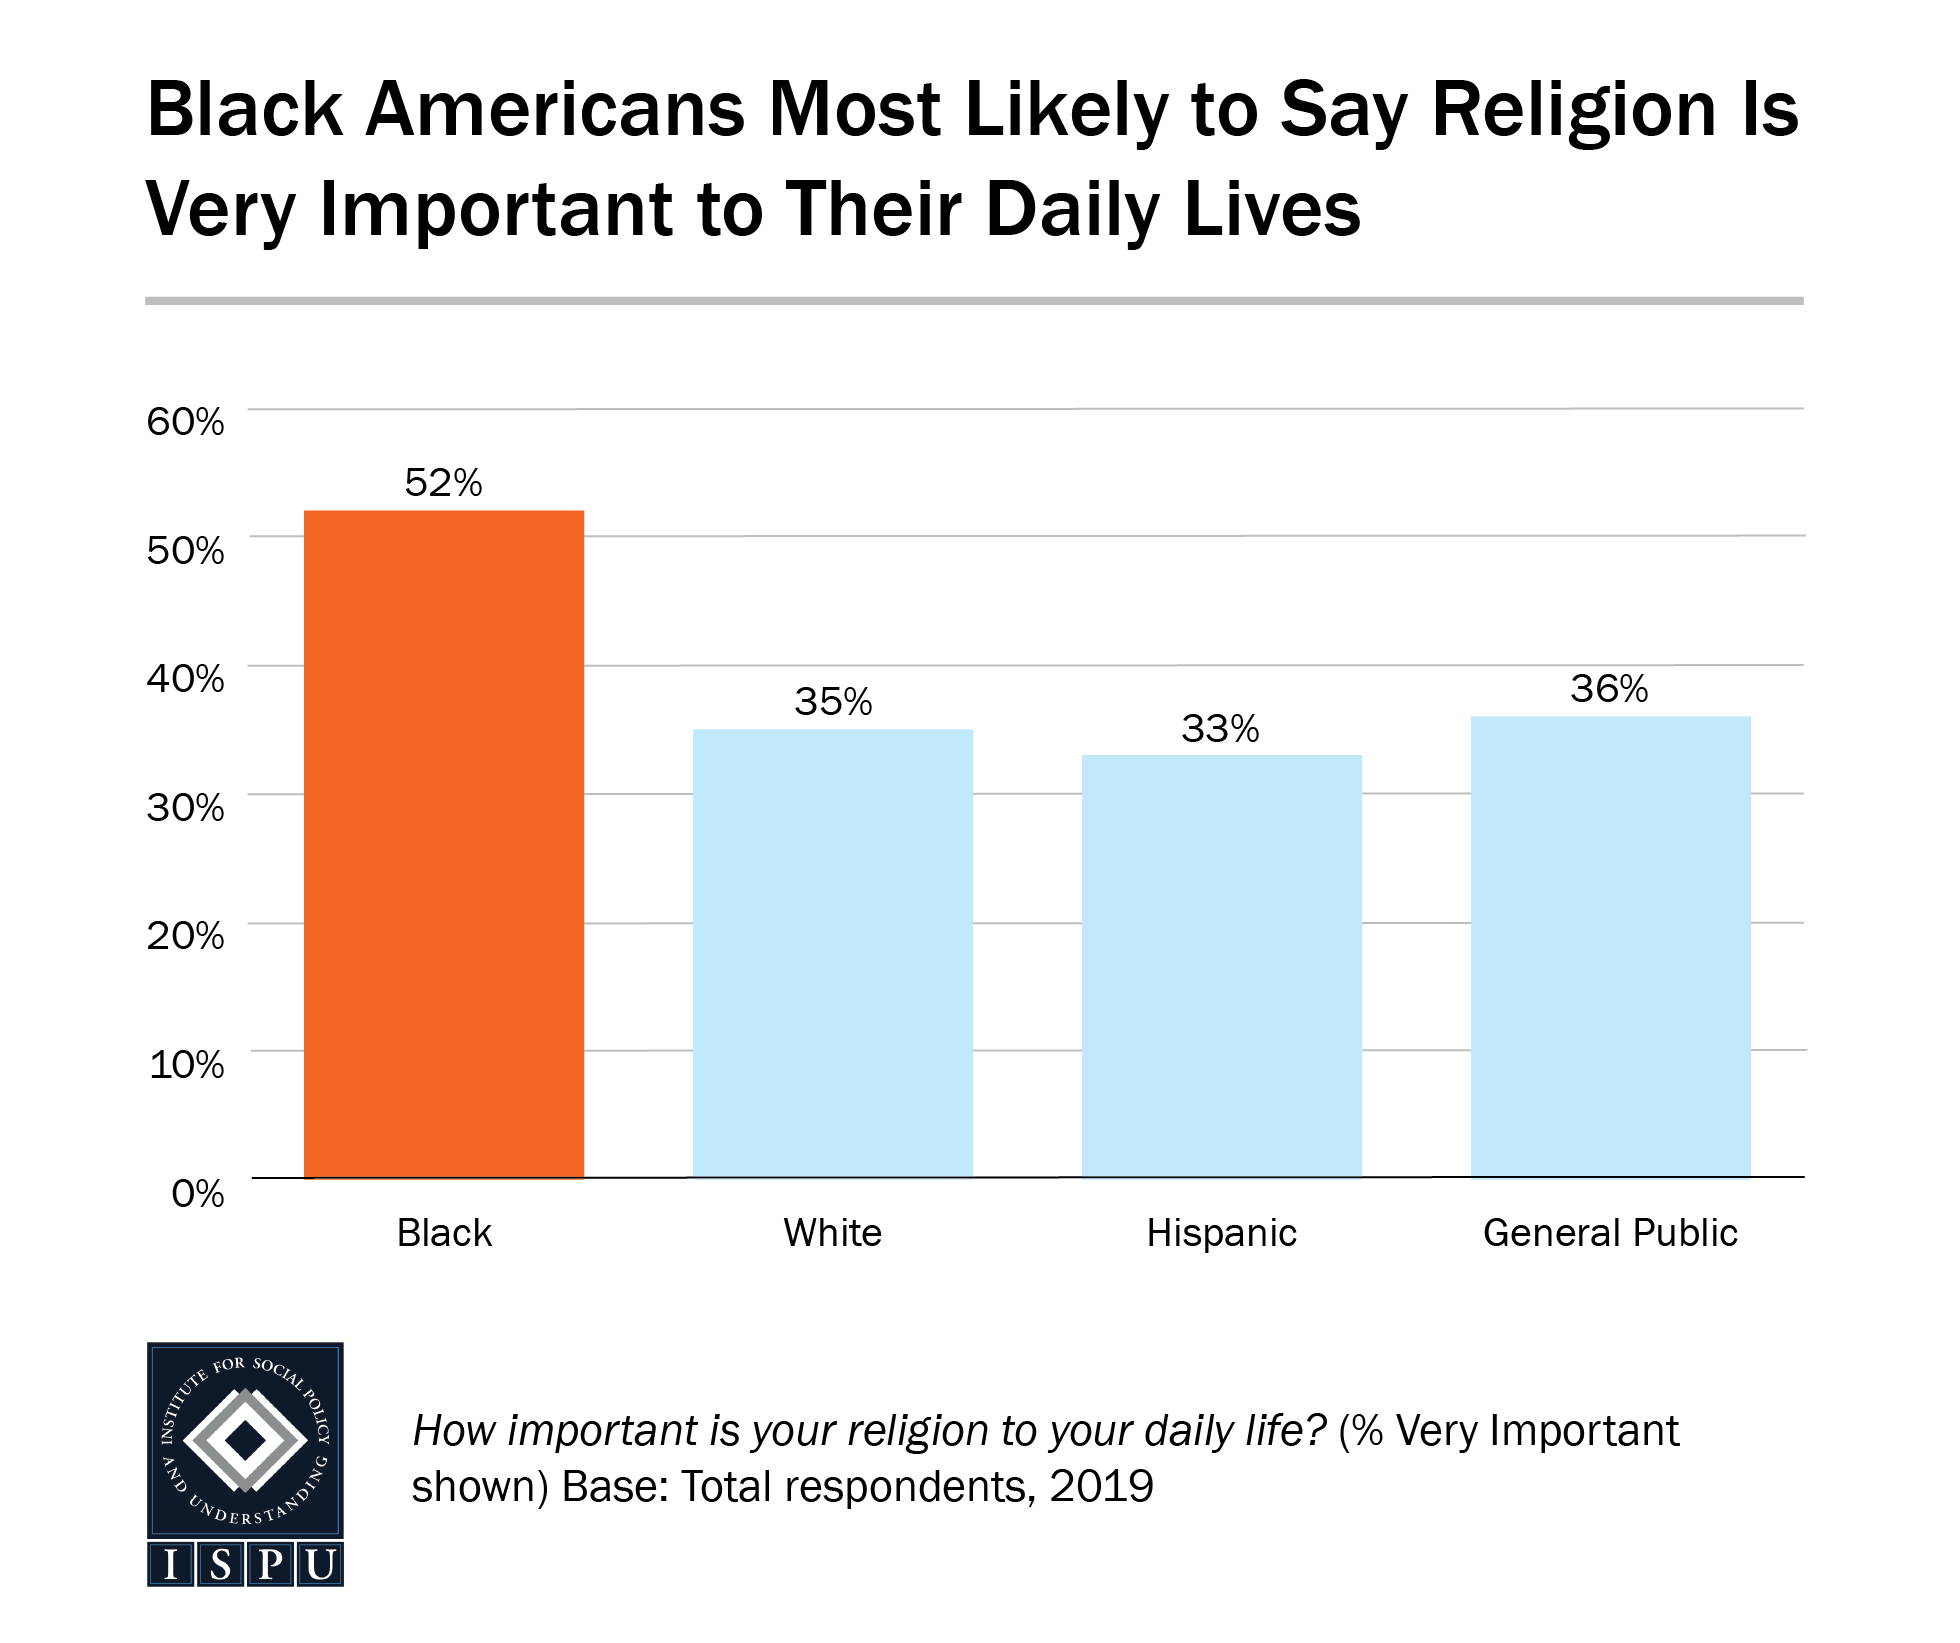 A bar graph showing that Black Americans are the most likely racial/ethnic group in the US to say that religion is very important to their daily lives